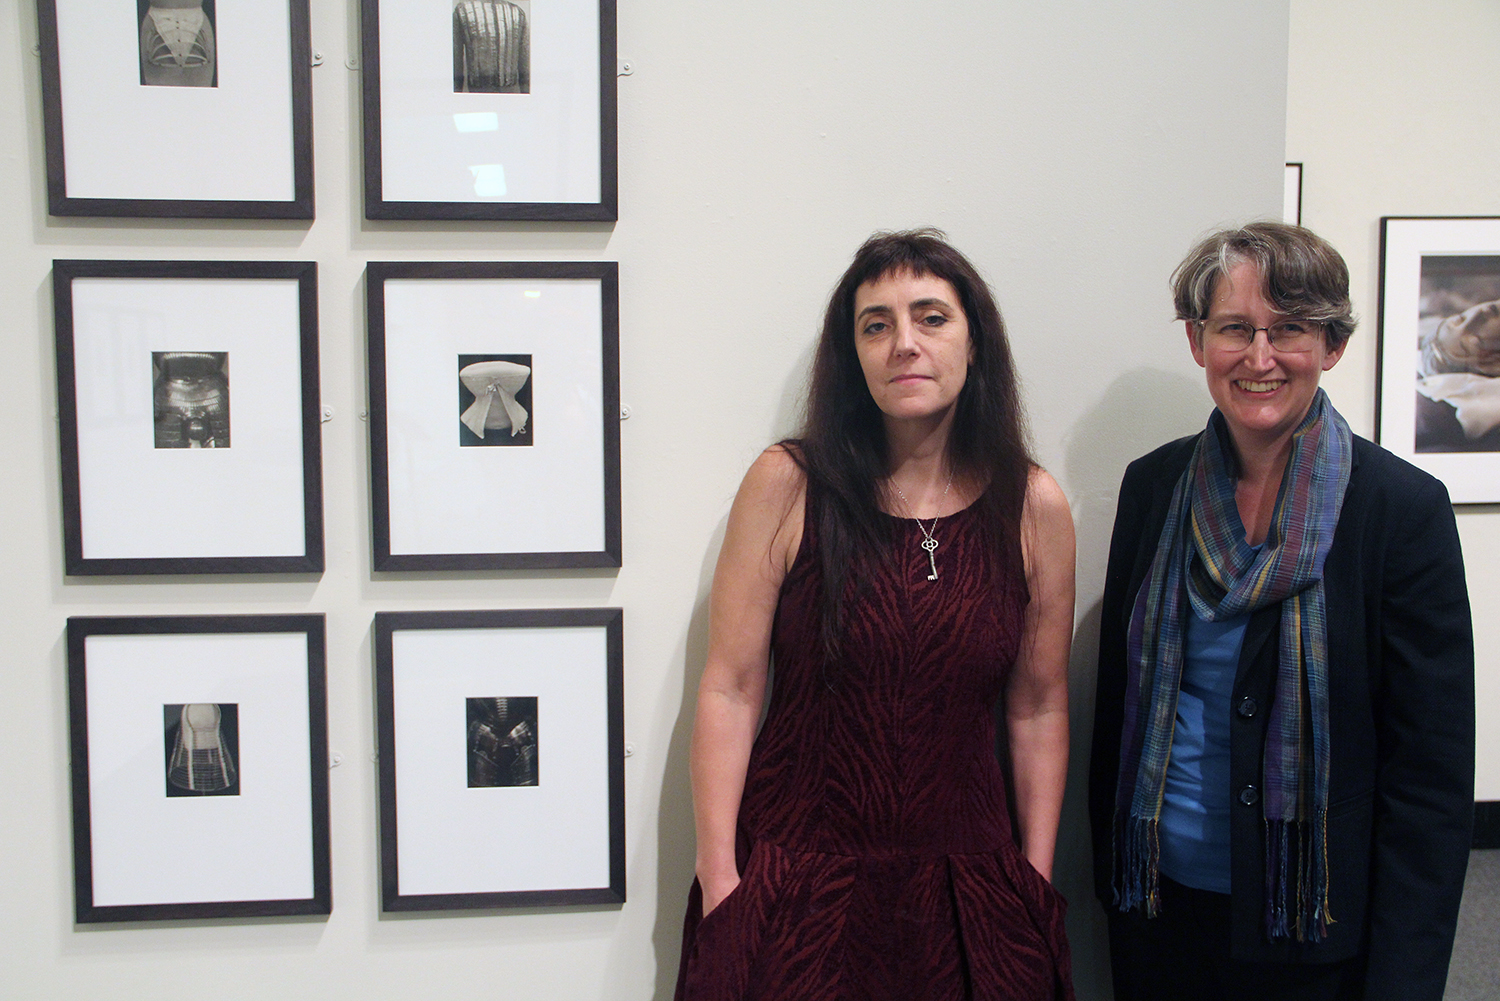 On Sept. 29, Artist Tanya Marcuse, at left, spoke about her exhibit, Phantom Bodies, on display at the Davison Art Center through Dec. 19. Pictured at right is DAC Curator Clare Rogan.